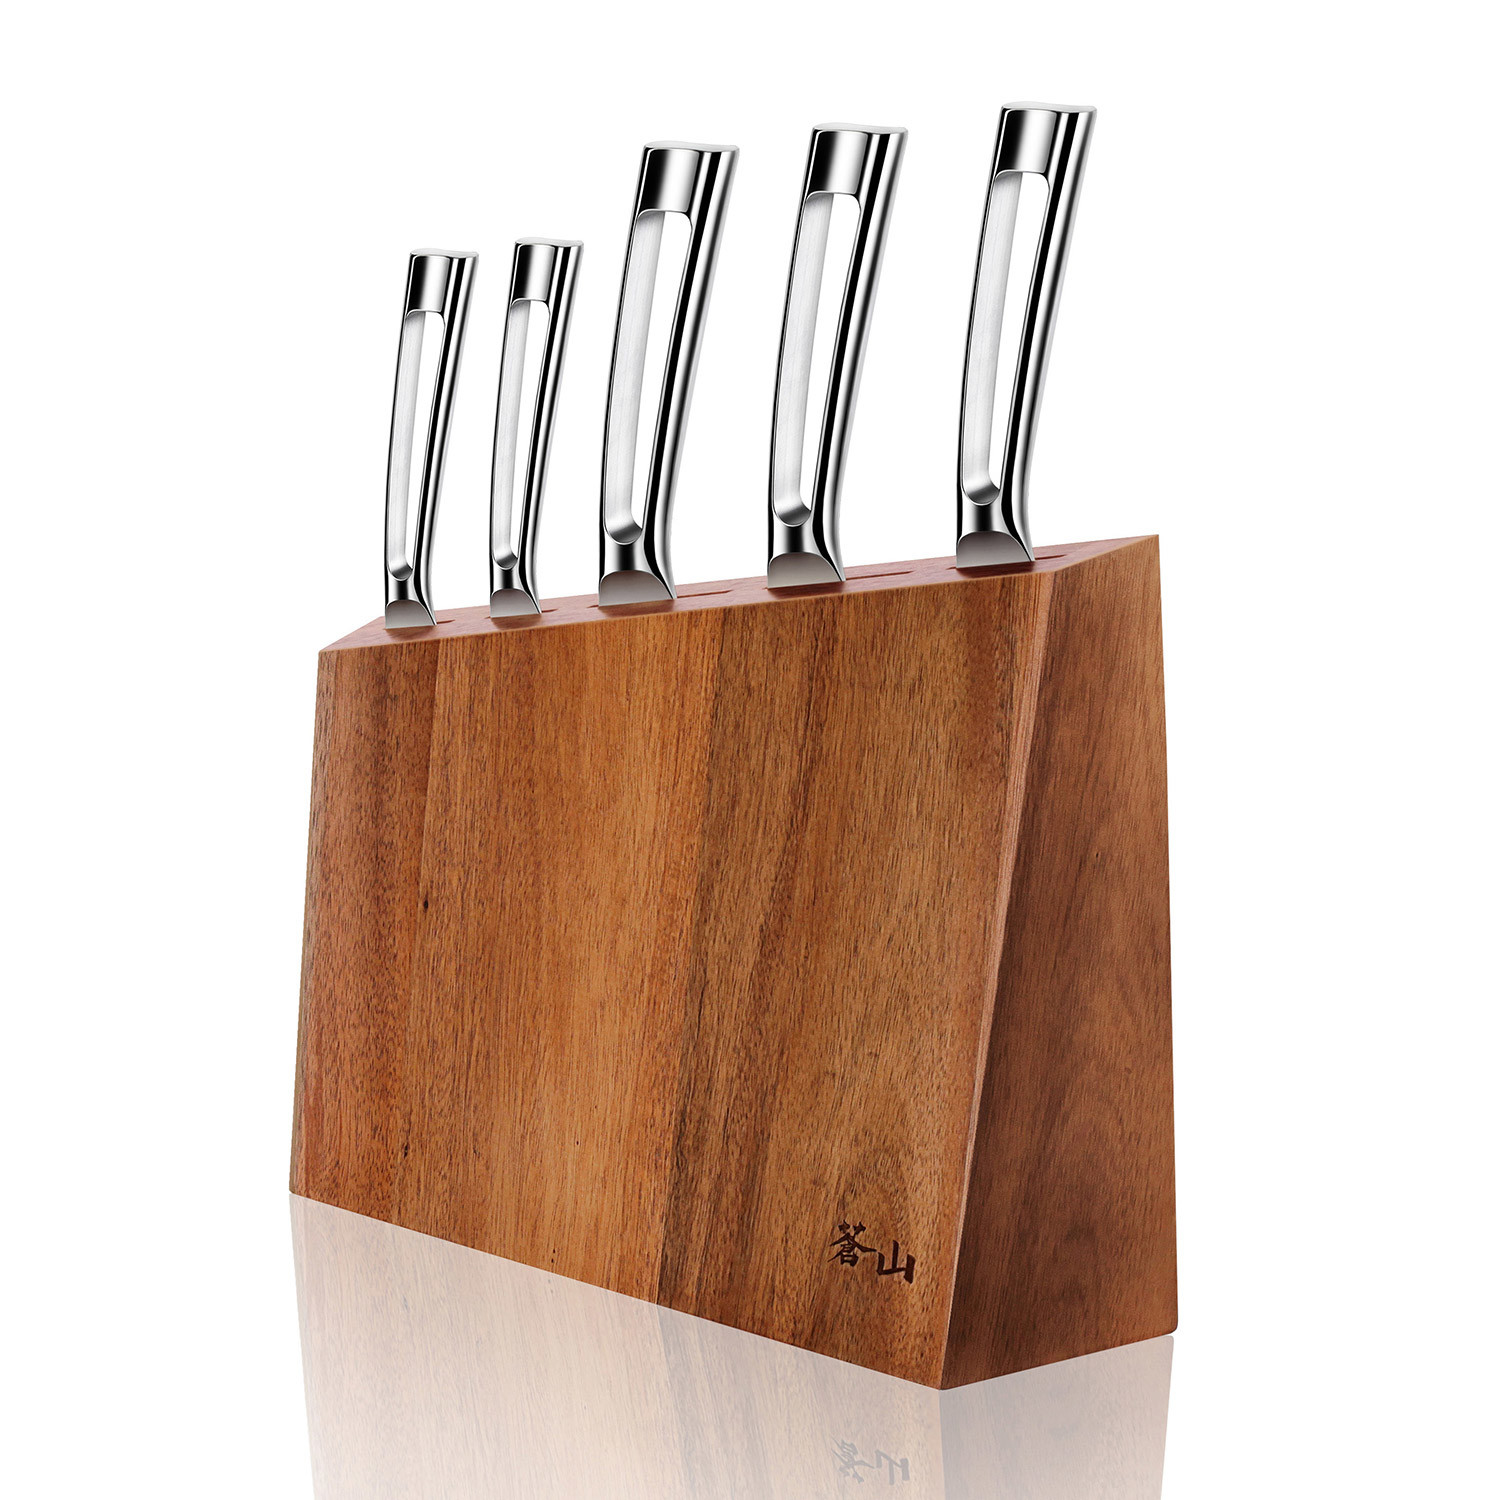 N1 Series 6 Piece Knife Block Set